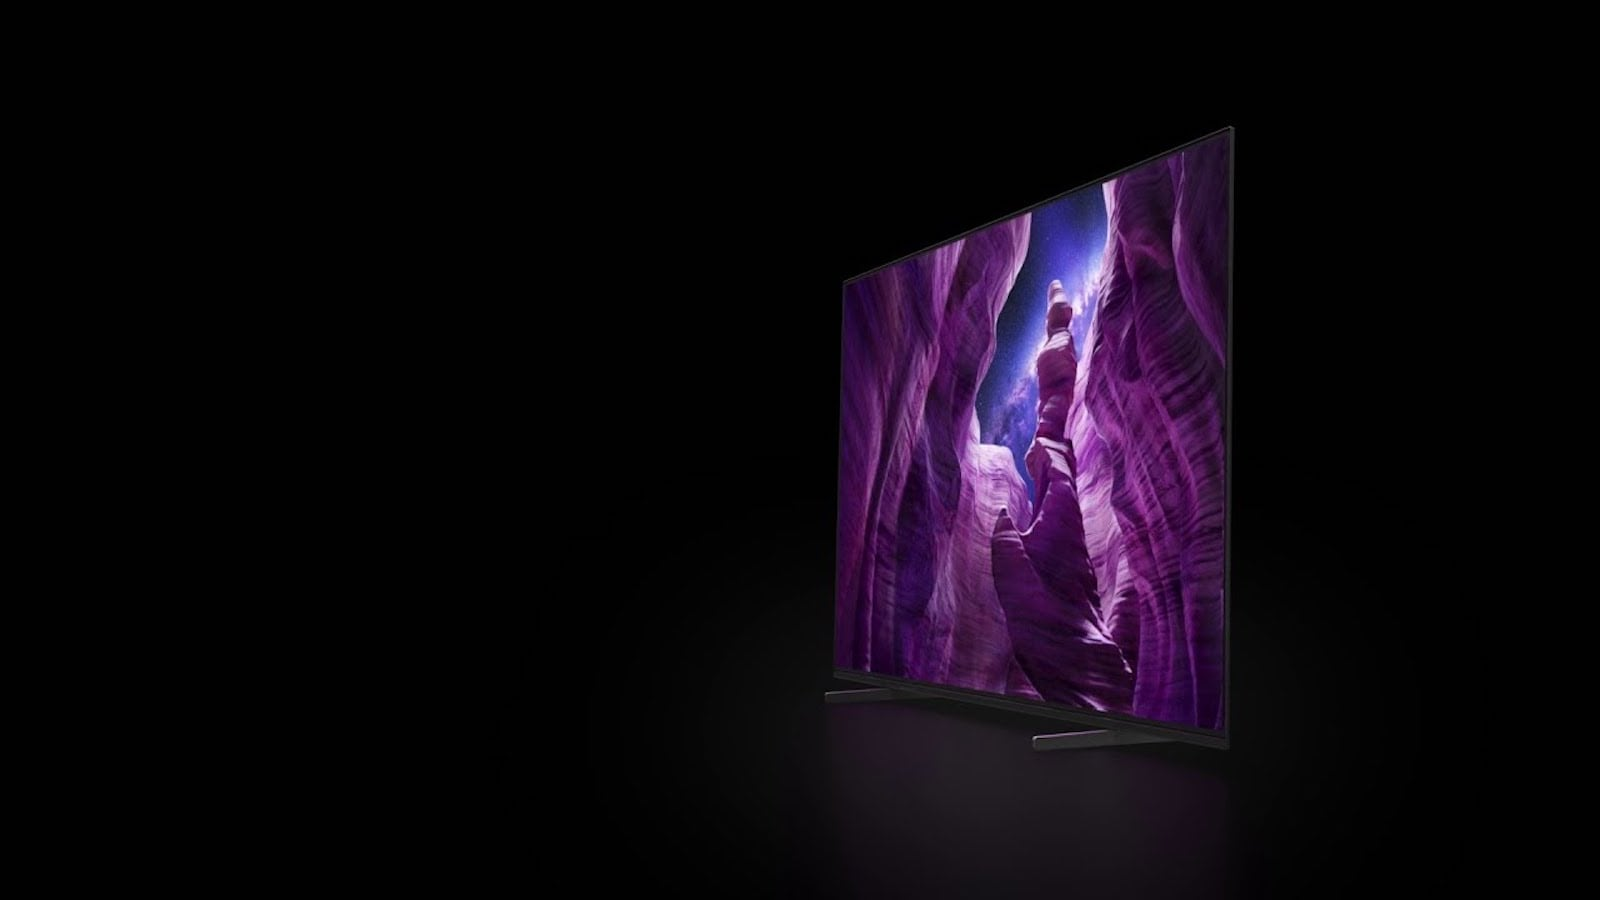 Sony A8 and A85 4K OLED TV Series offer X-Motion Clarity motion processing technology